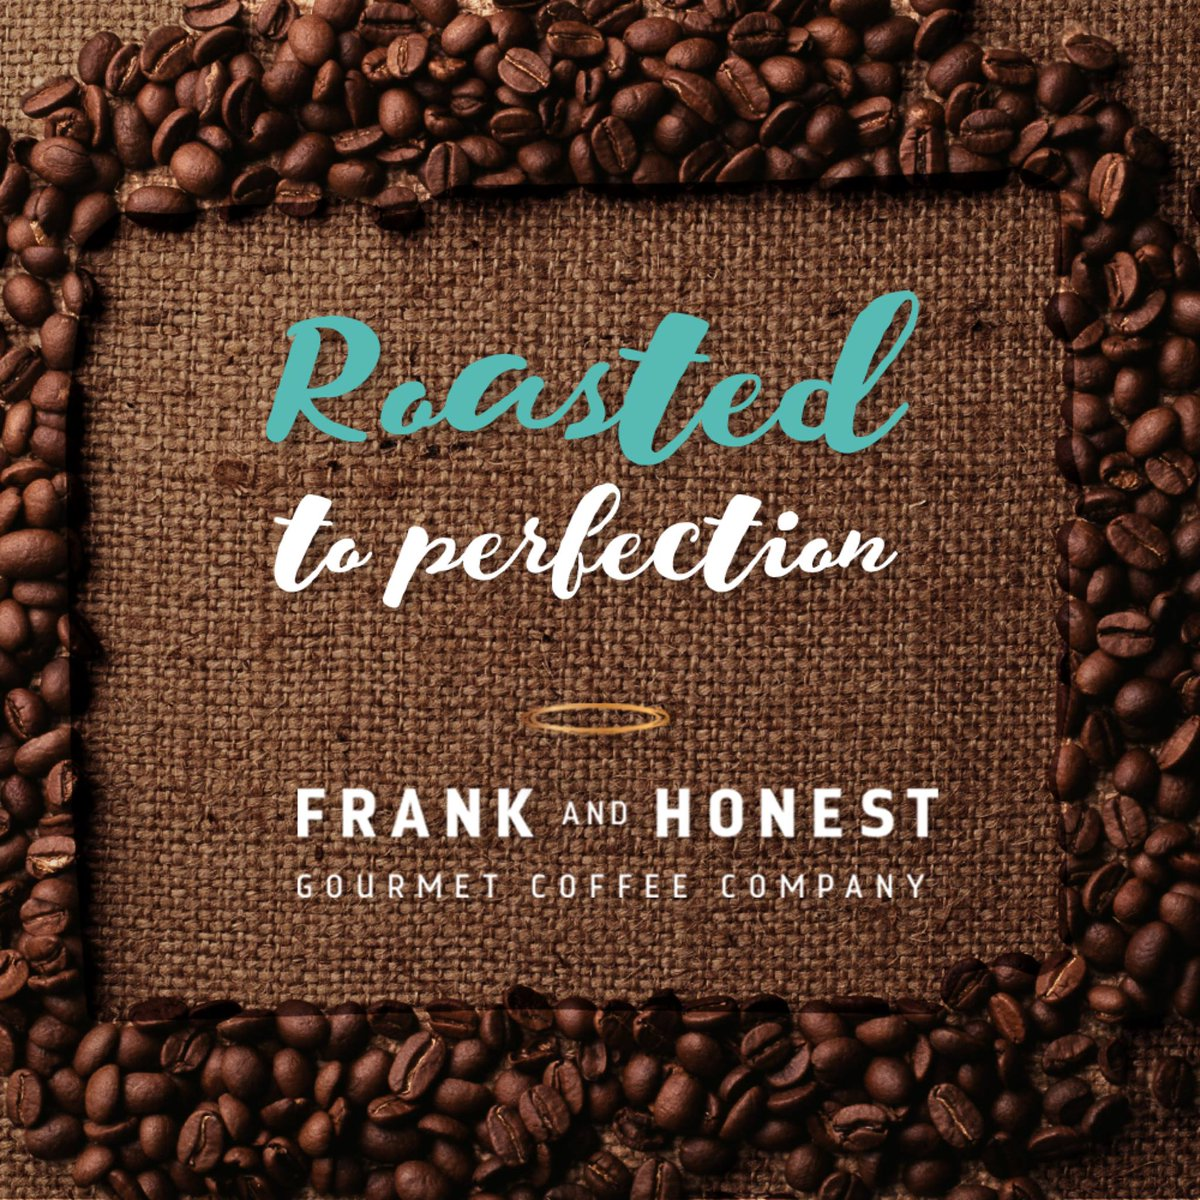 Make this Sunday as perfect as our coffee. Yes it's perfect - we're just being #frankandhonest about it! https://t.co/ZWQ8OmB1h5